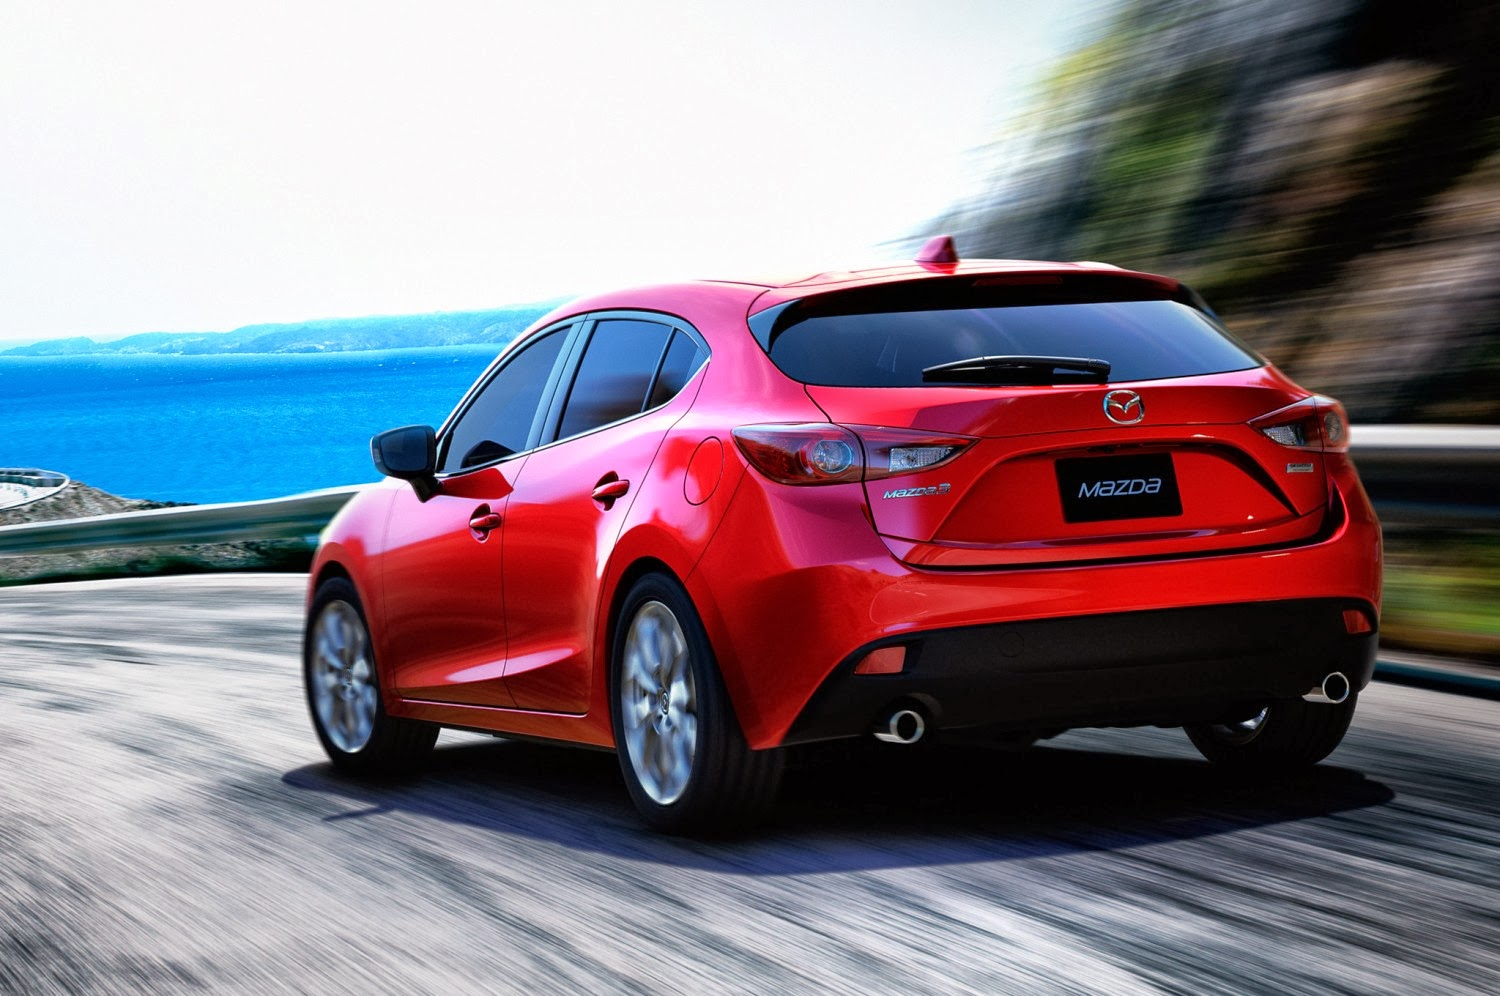 2014 Mazda 3 8 Free Hd Car Wallpaper